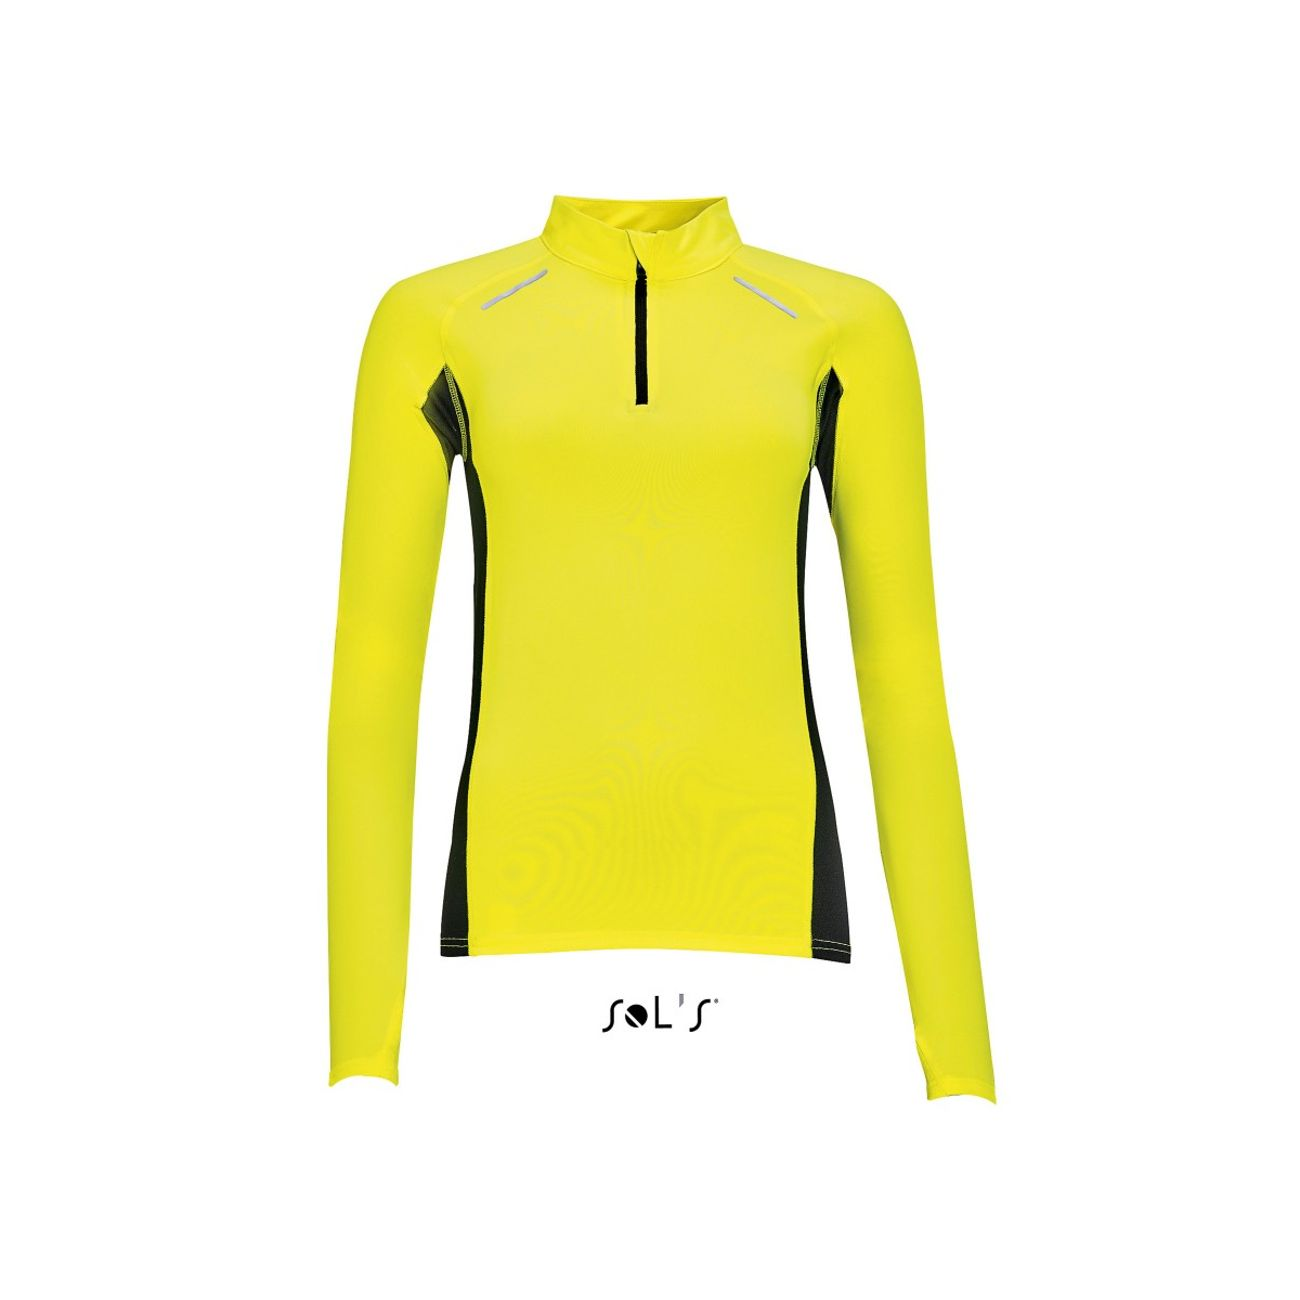 839704602b520 ... Course à pied femme SOL S t-shirt running manches longues - Femme -  01417